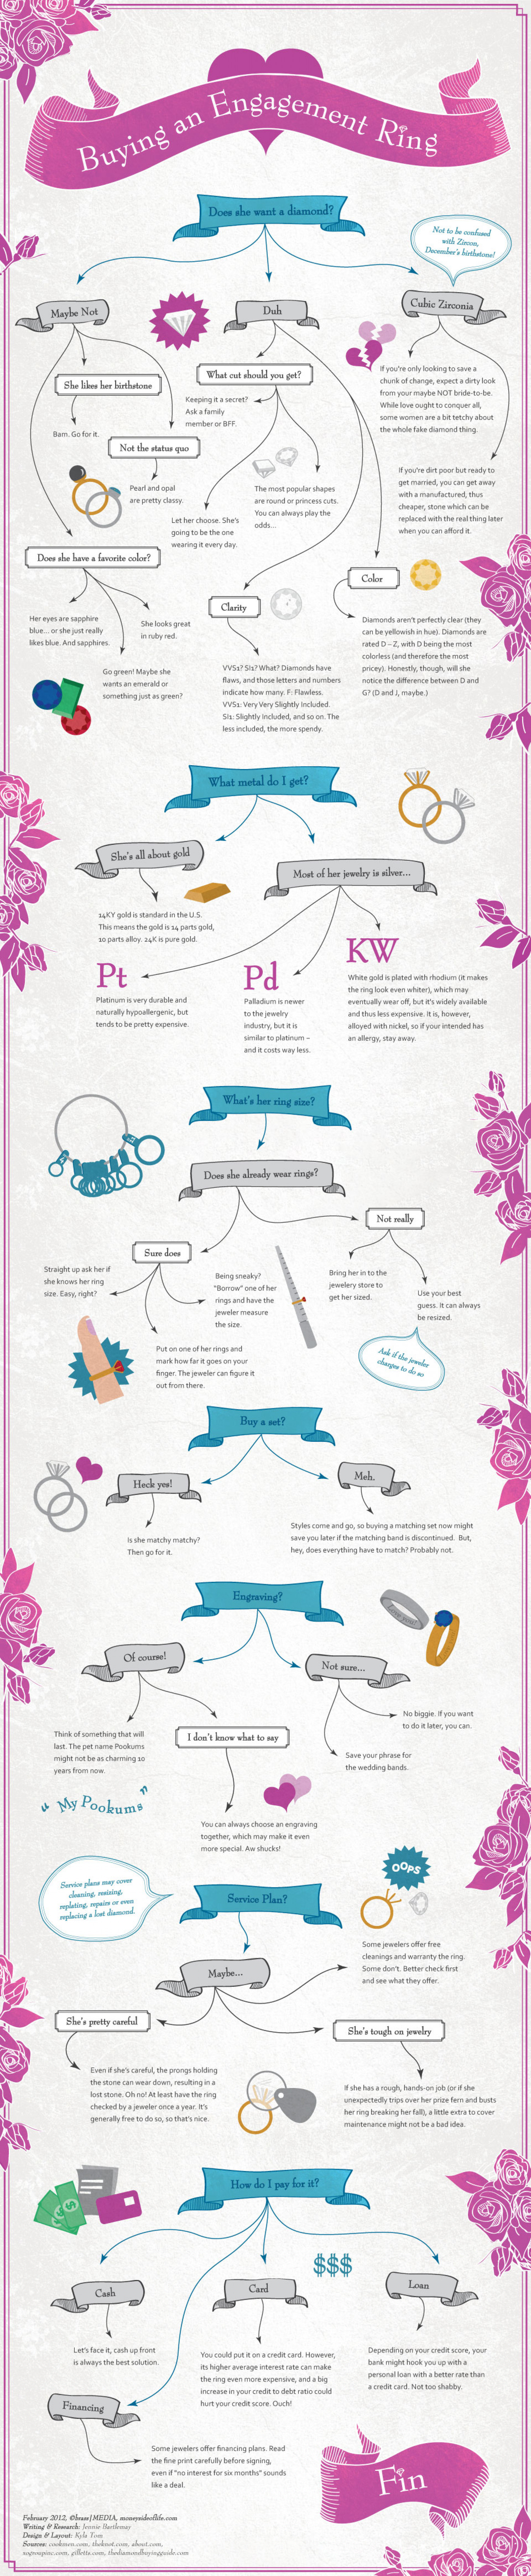 Buying an Engagement Ring Infographic